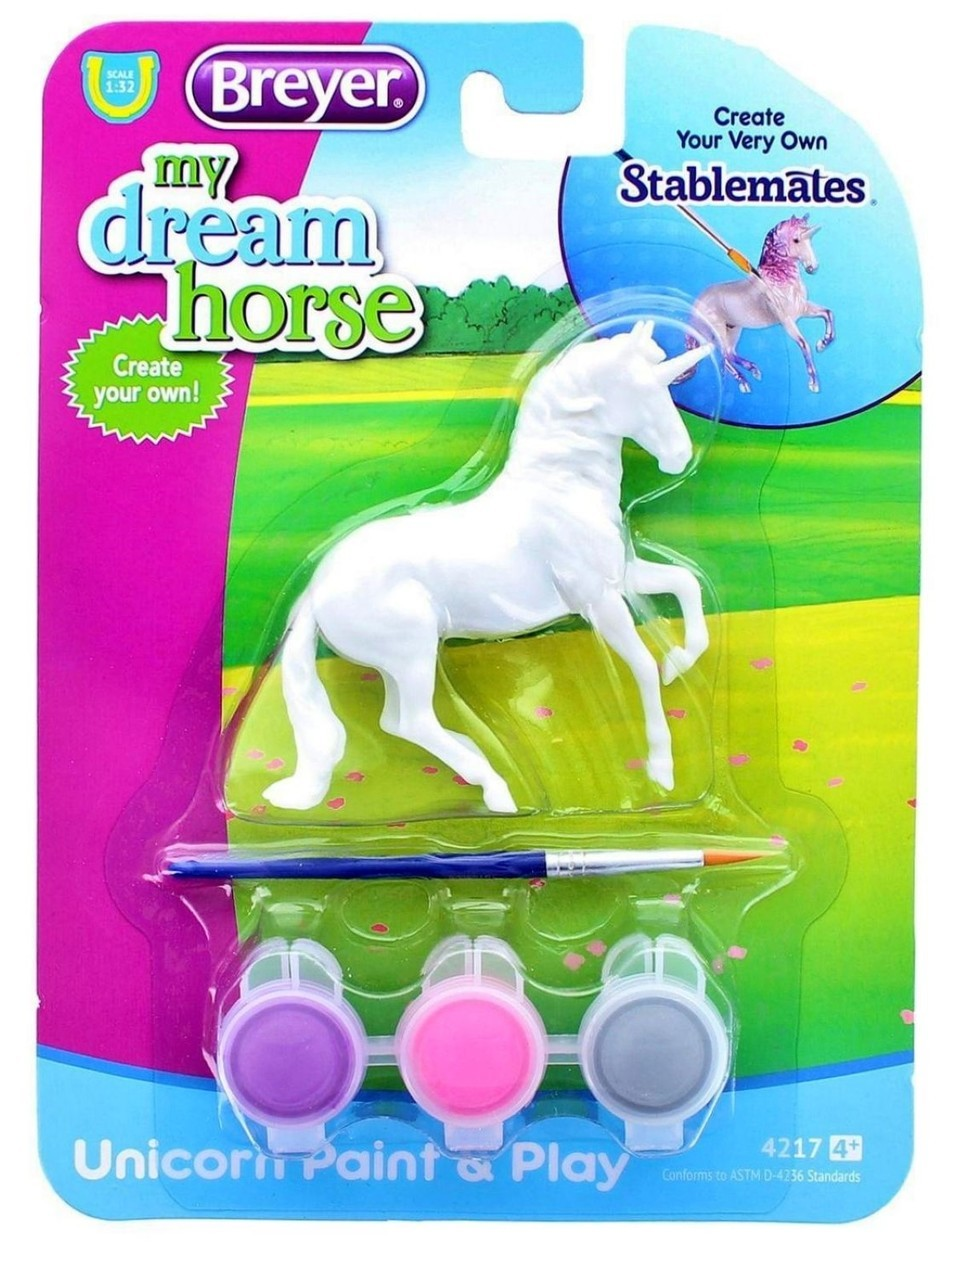 Breyer Activity Unicorn Paint & Play